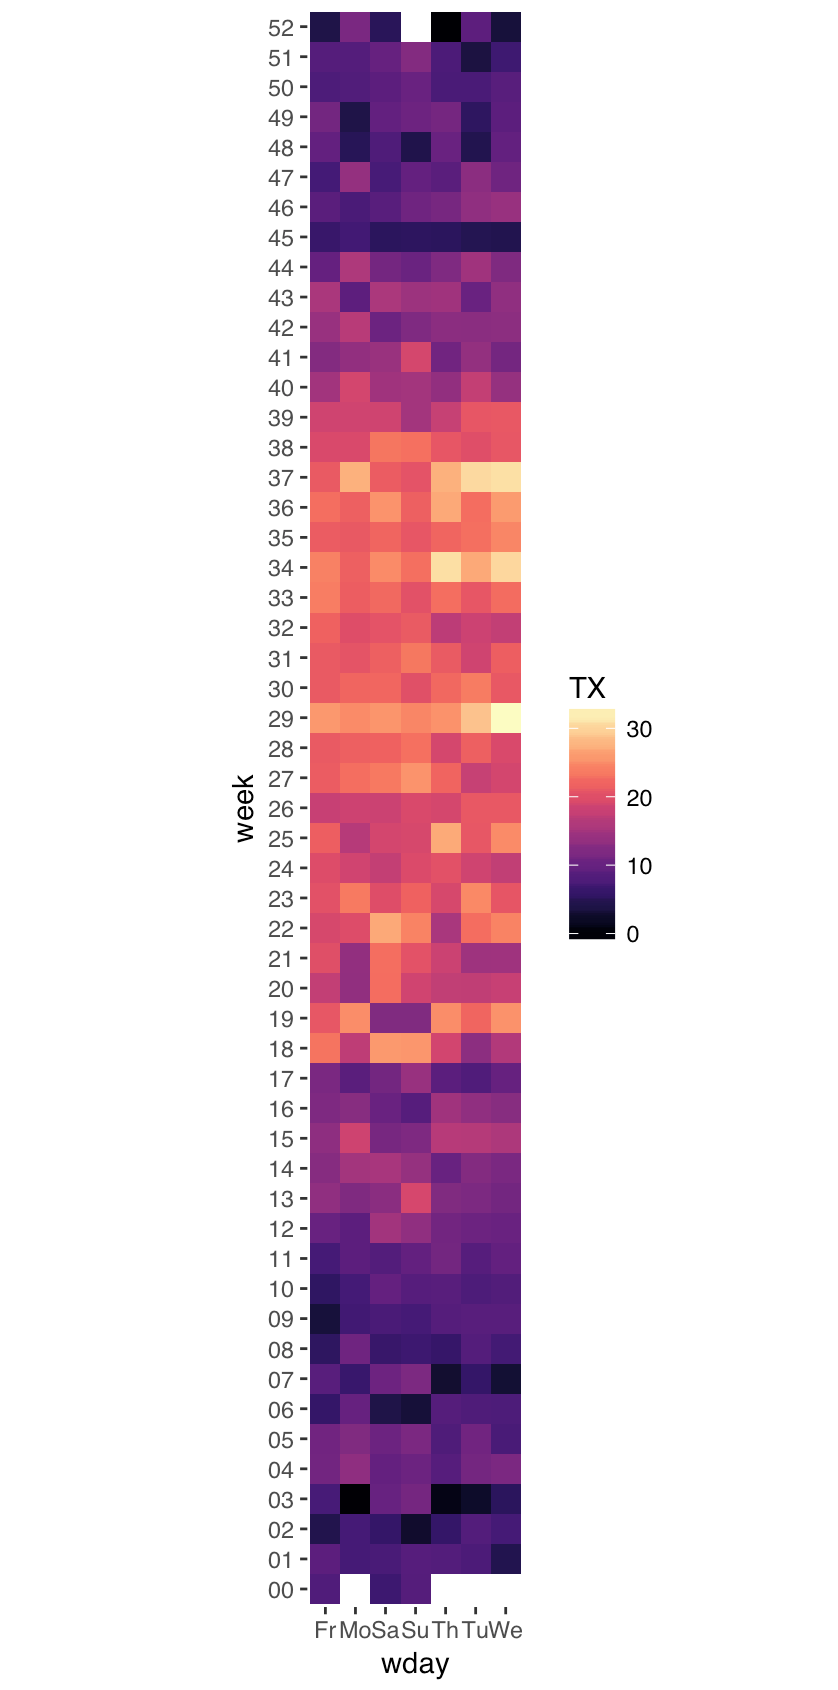 Visualising temperatures in Amsterdam as a heatmap in R